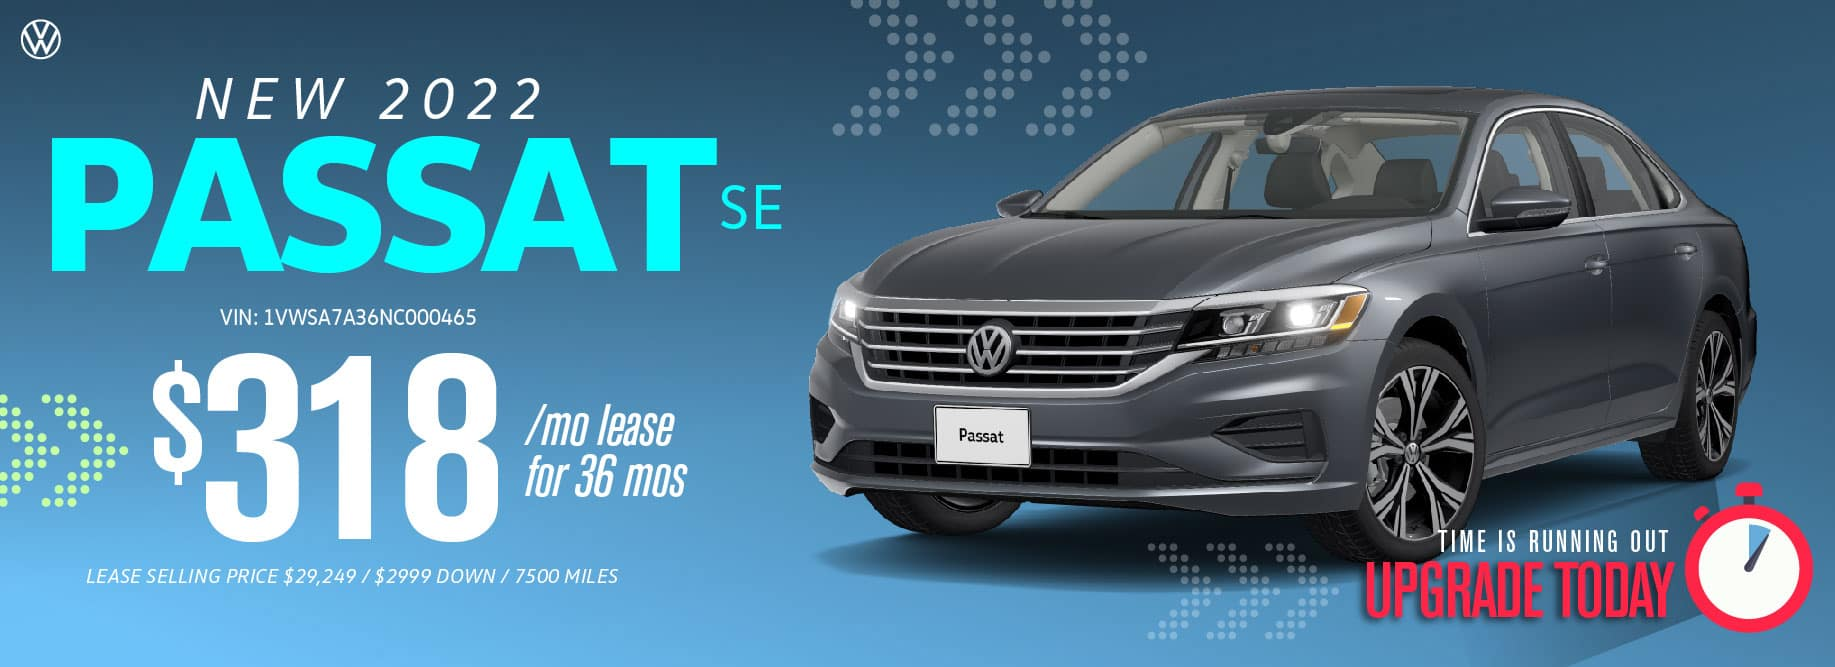 Lease the new 2022 Passat starting at $318 a month at VW SouthTowne!